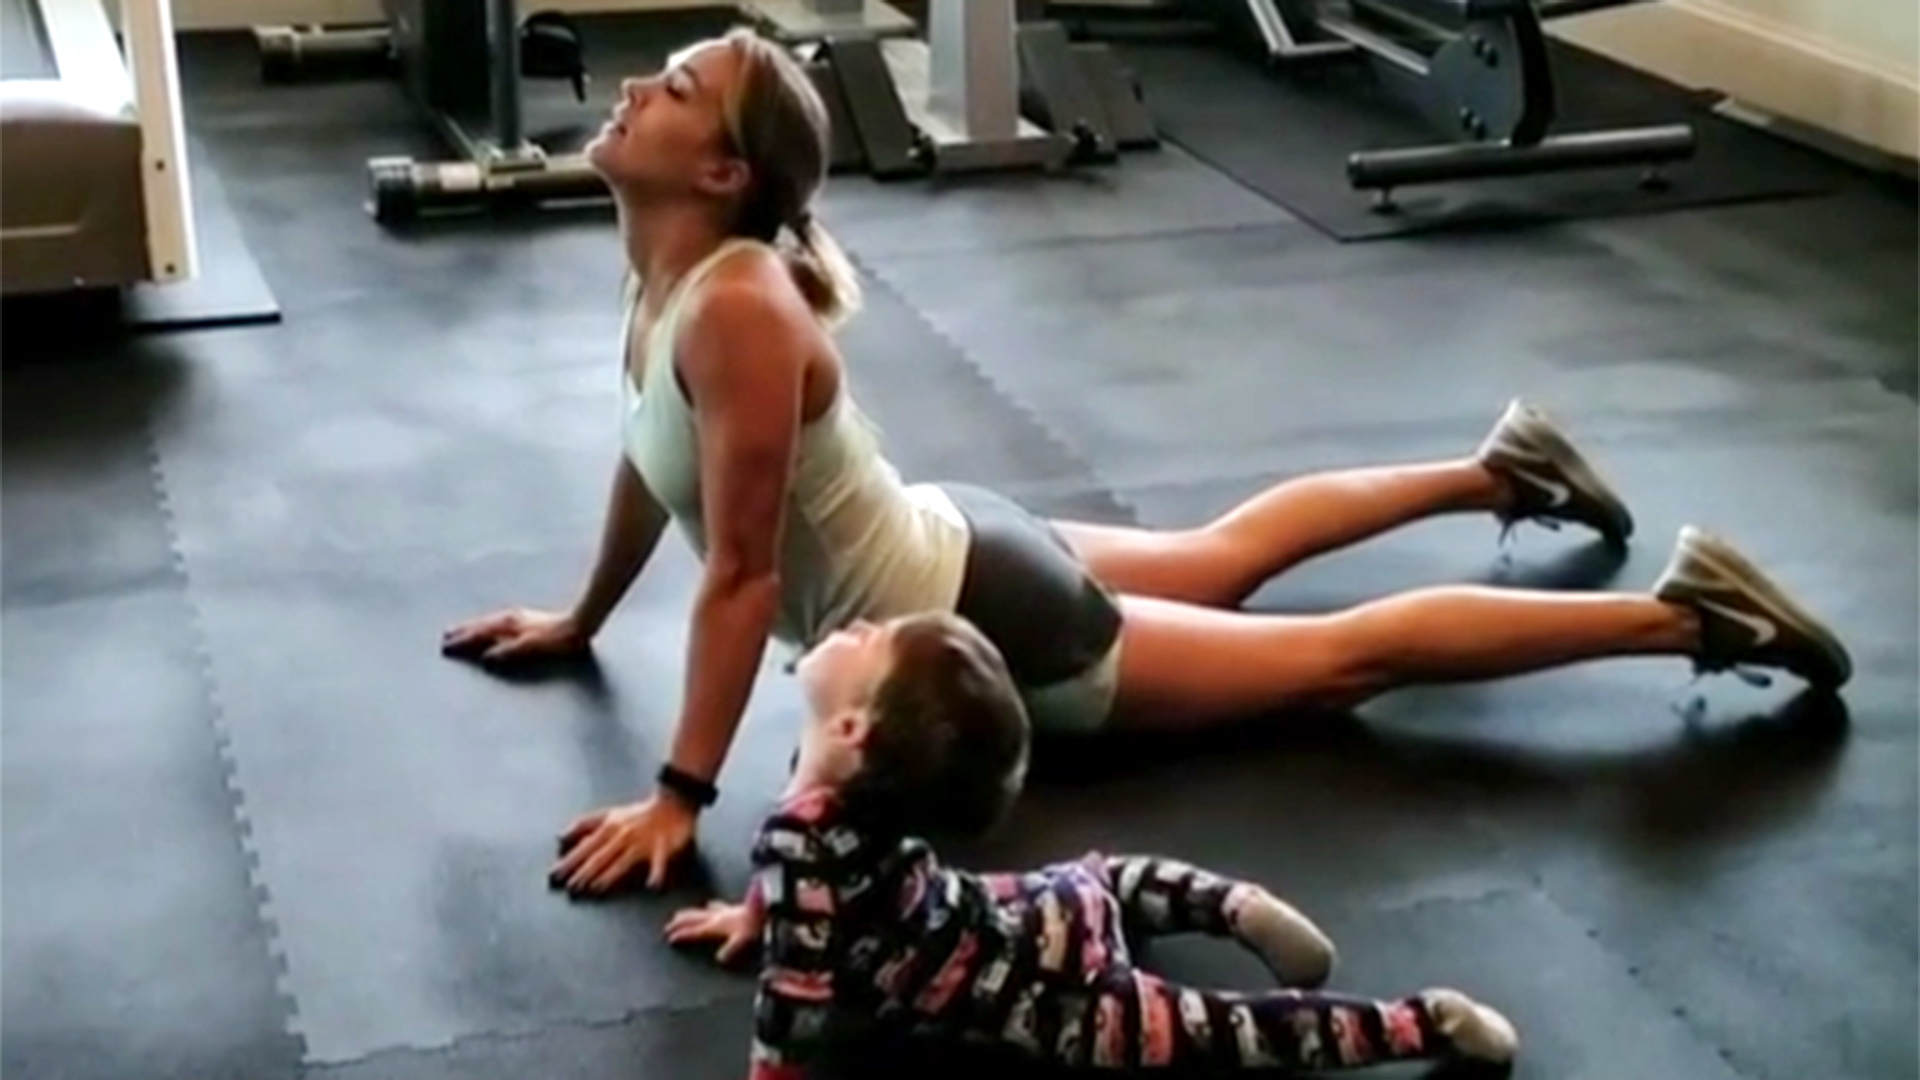 Carrie Underwood has the perfect yoga partner in 2-year-old son Isaiah